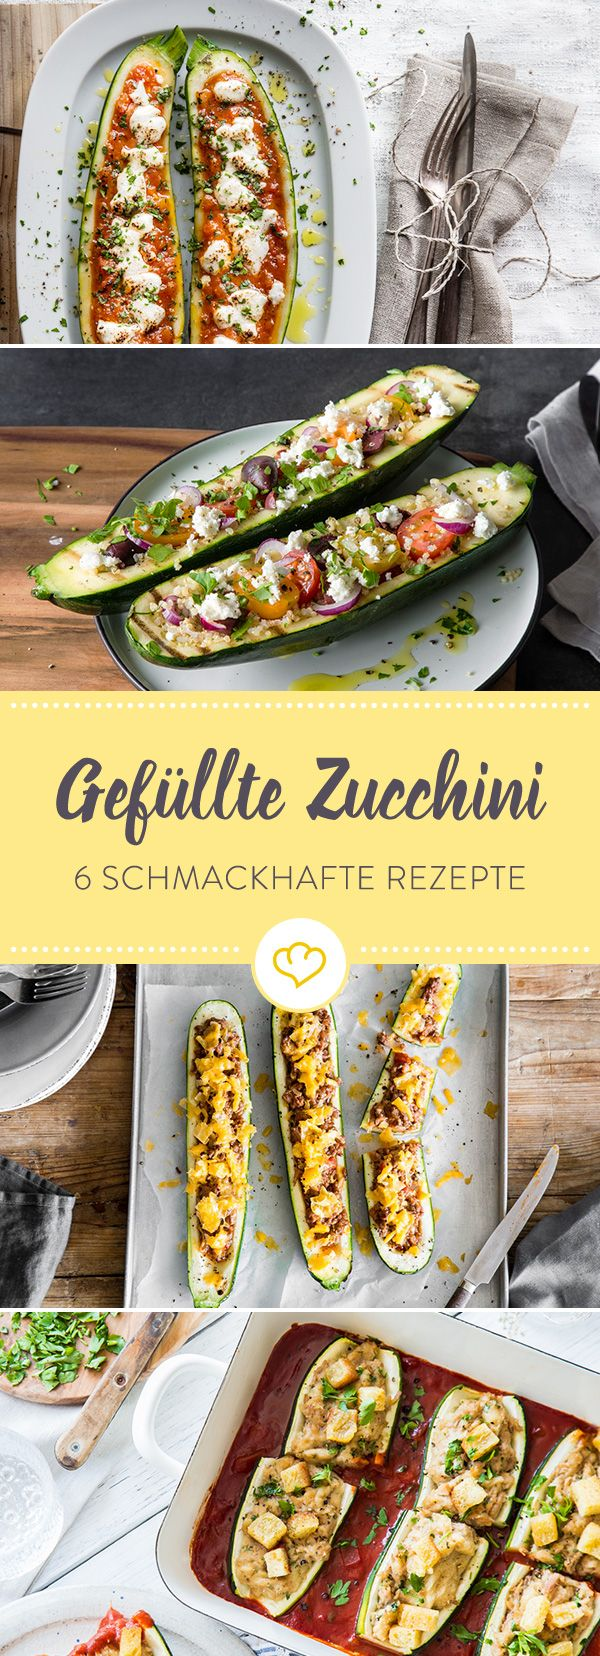 Photo of Because the inner values ​​count: 6 recipe ideas for stuffed zucchini